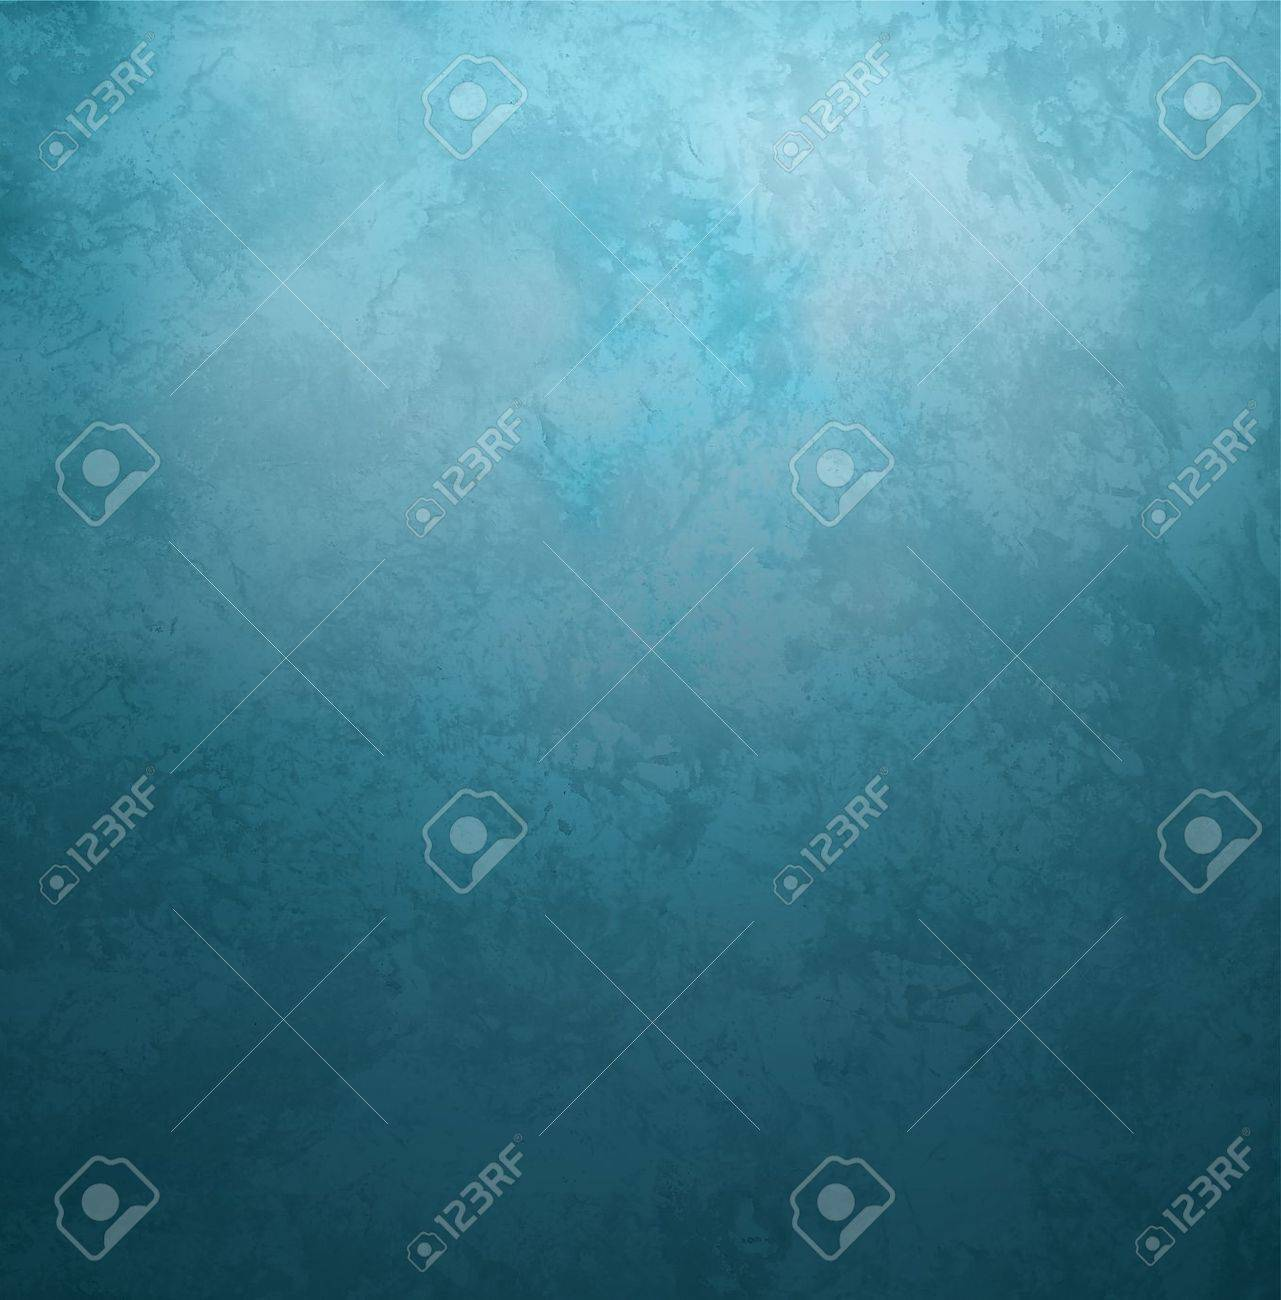 dark blue grunge old paper vintage retro style background Stock Photo - 13737454